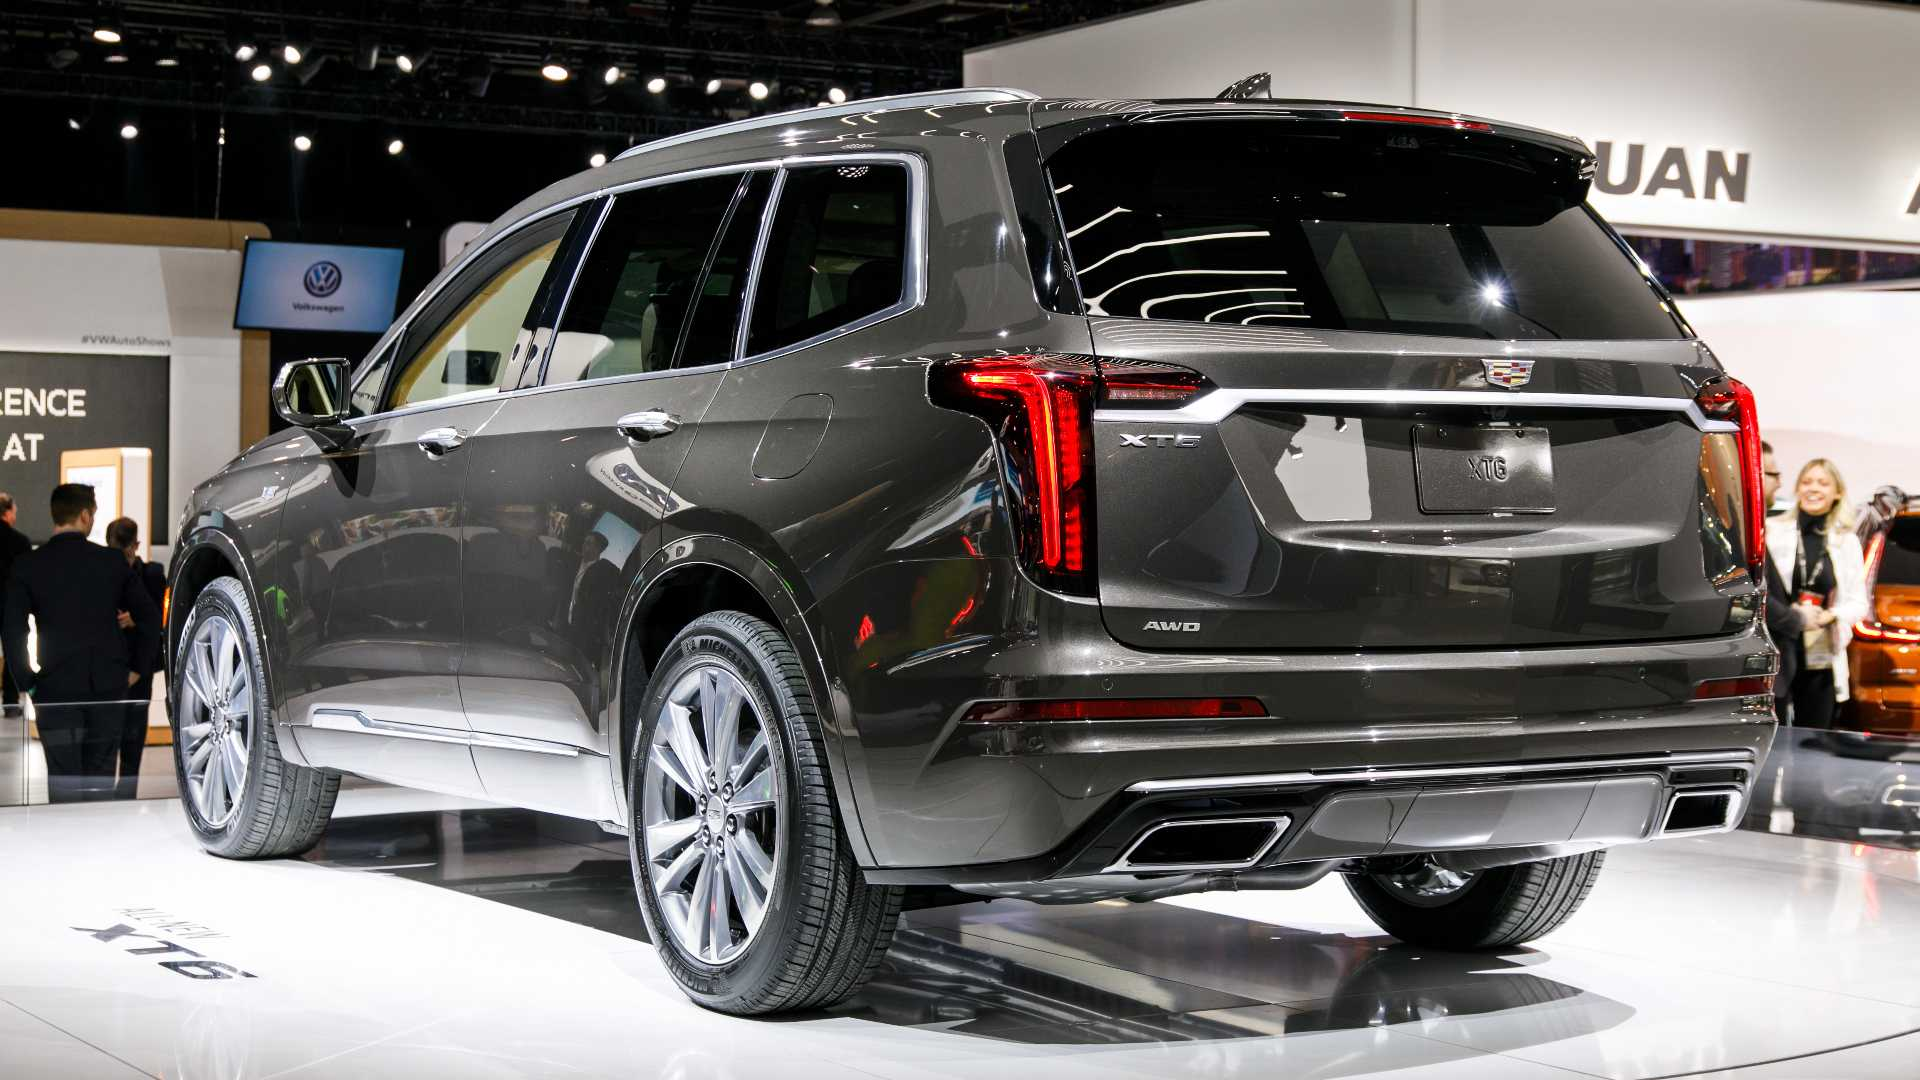 25 All New 2020 Cadillac Xt6 Length Specs for 2020 Cadillac Xt6 Length